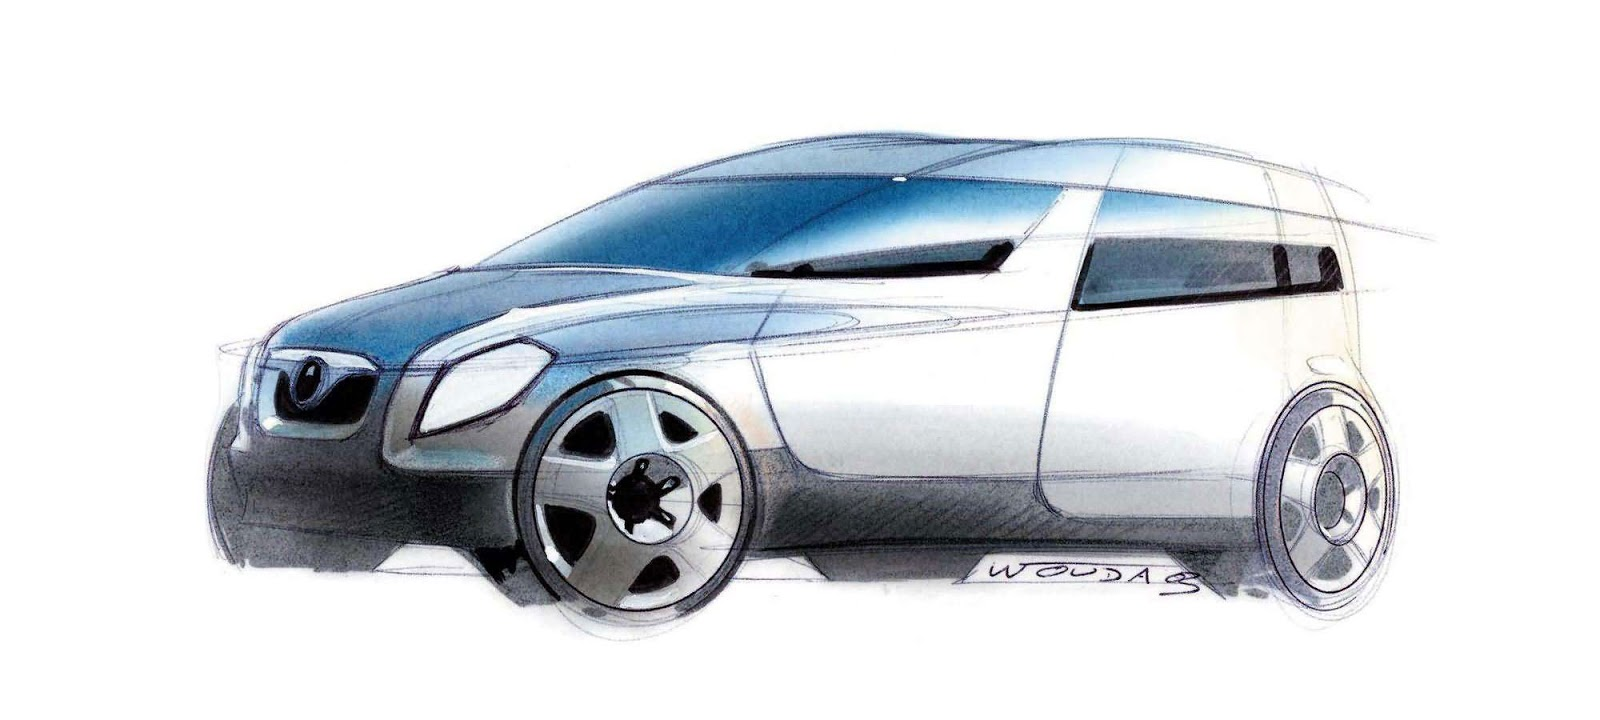 Skoda Roomster sketch by Peter Wouda - early theme front quarter view